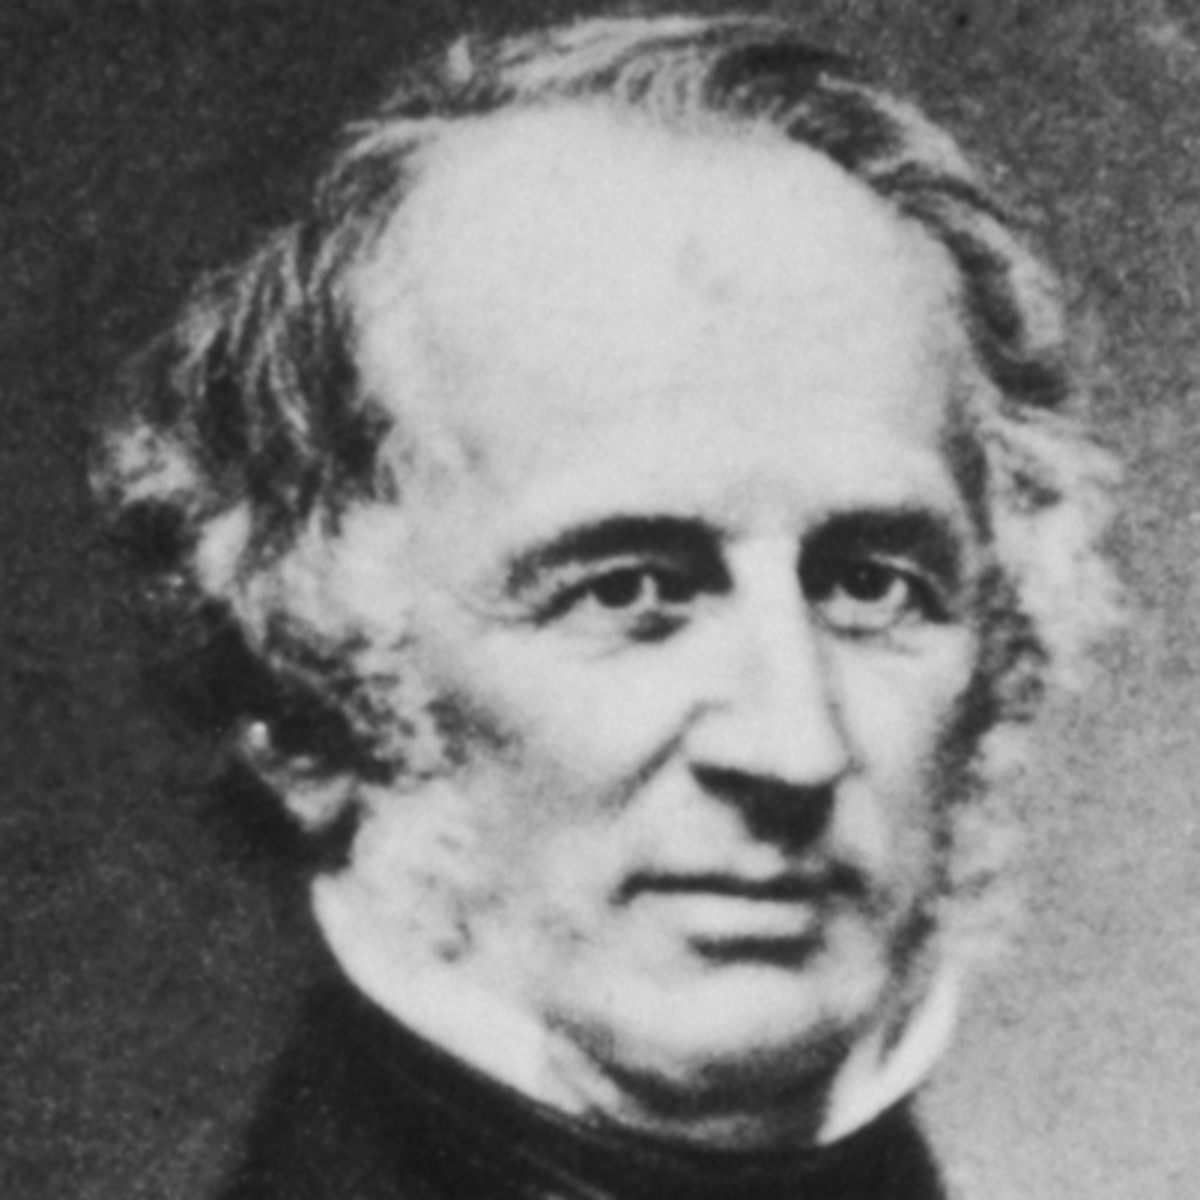 a biography of vanderbilt an american steamship and railroad builder Cornelius vanderbilt facts: cornelius vanderbilt (1794-1877), american steamship and railroad builder, executive, and promoter, transferred his attention from boating to railroads in his.